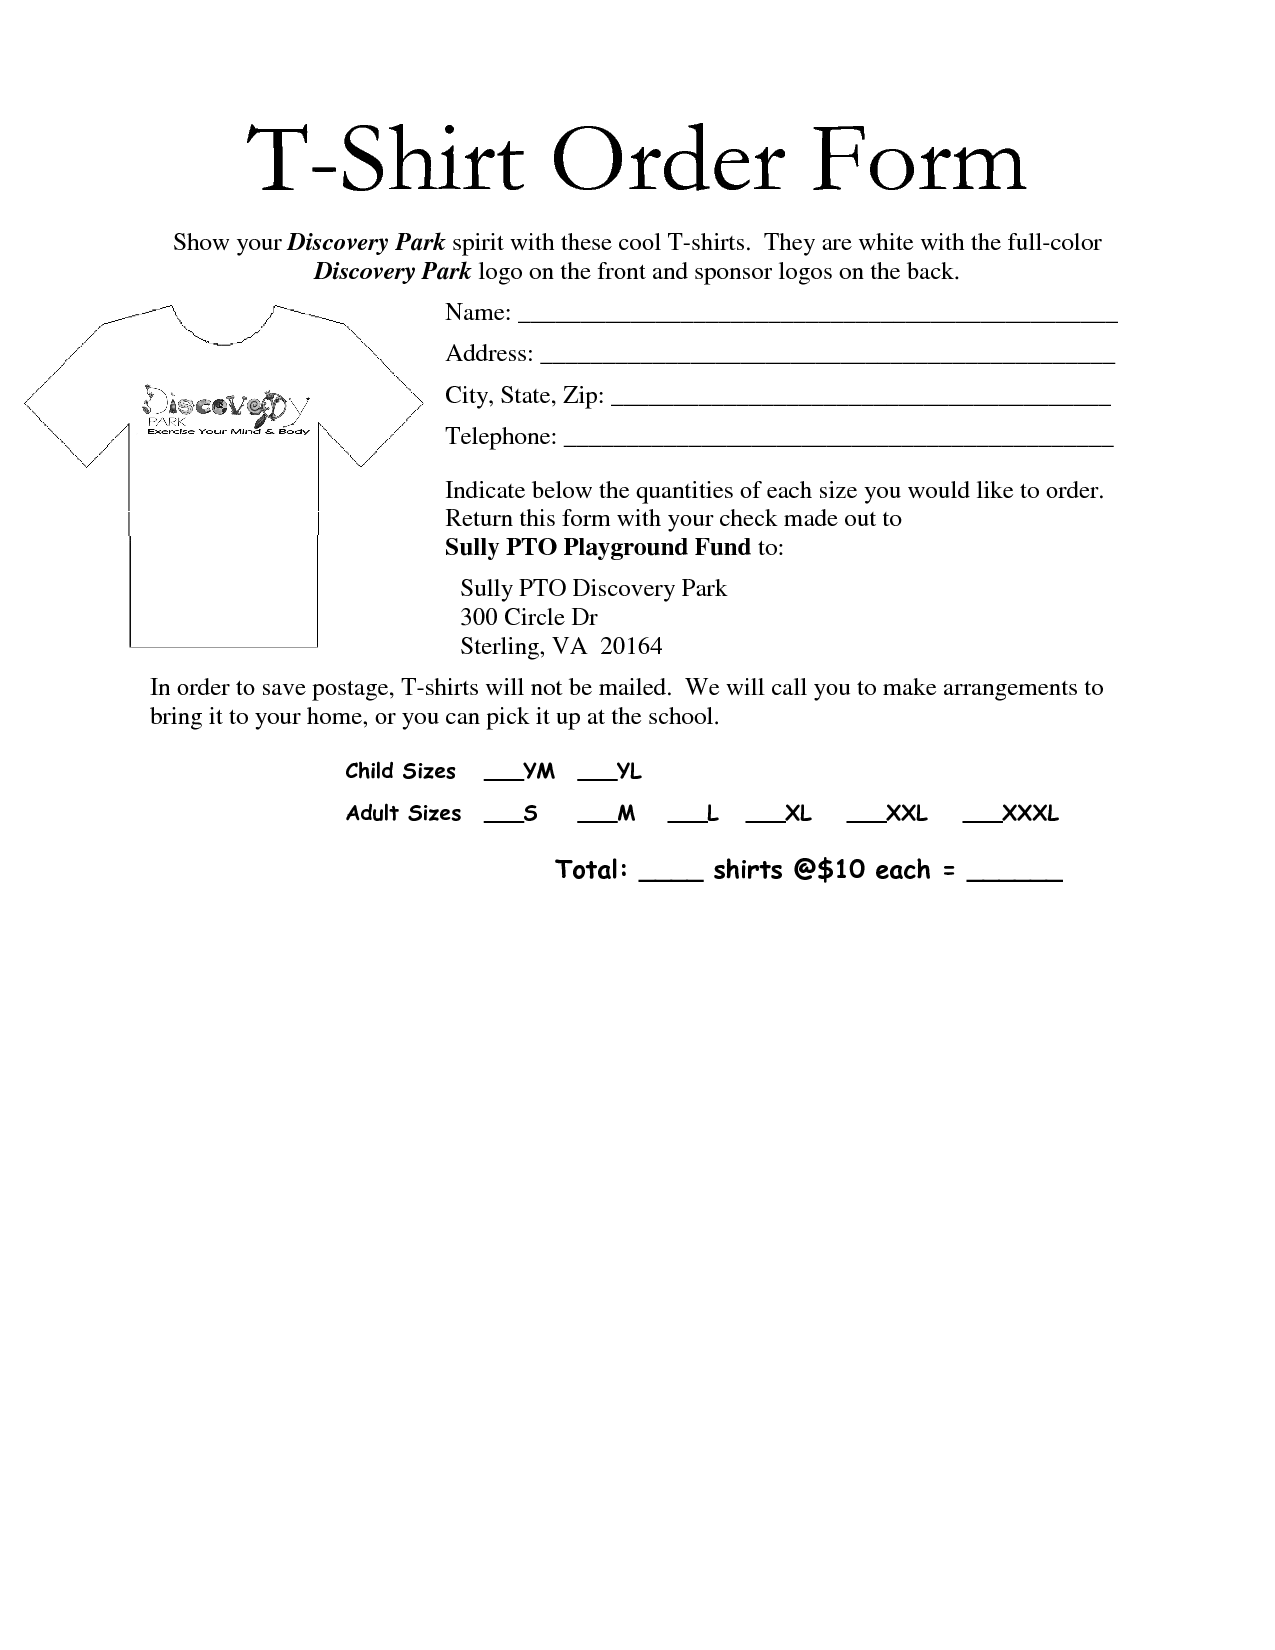 Design t shirt transfer template - 35 Awesome T Shirt Order Form Template Free Images